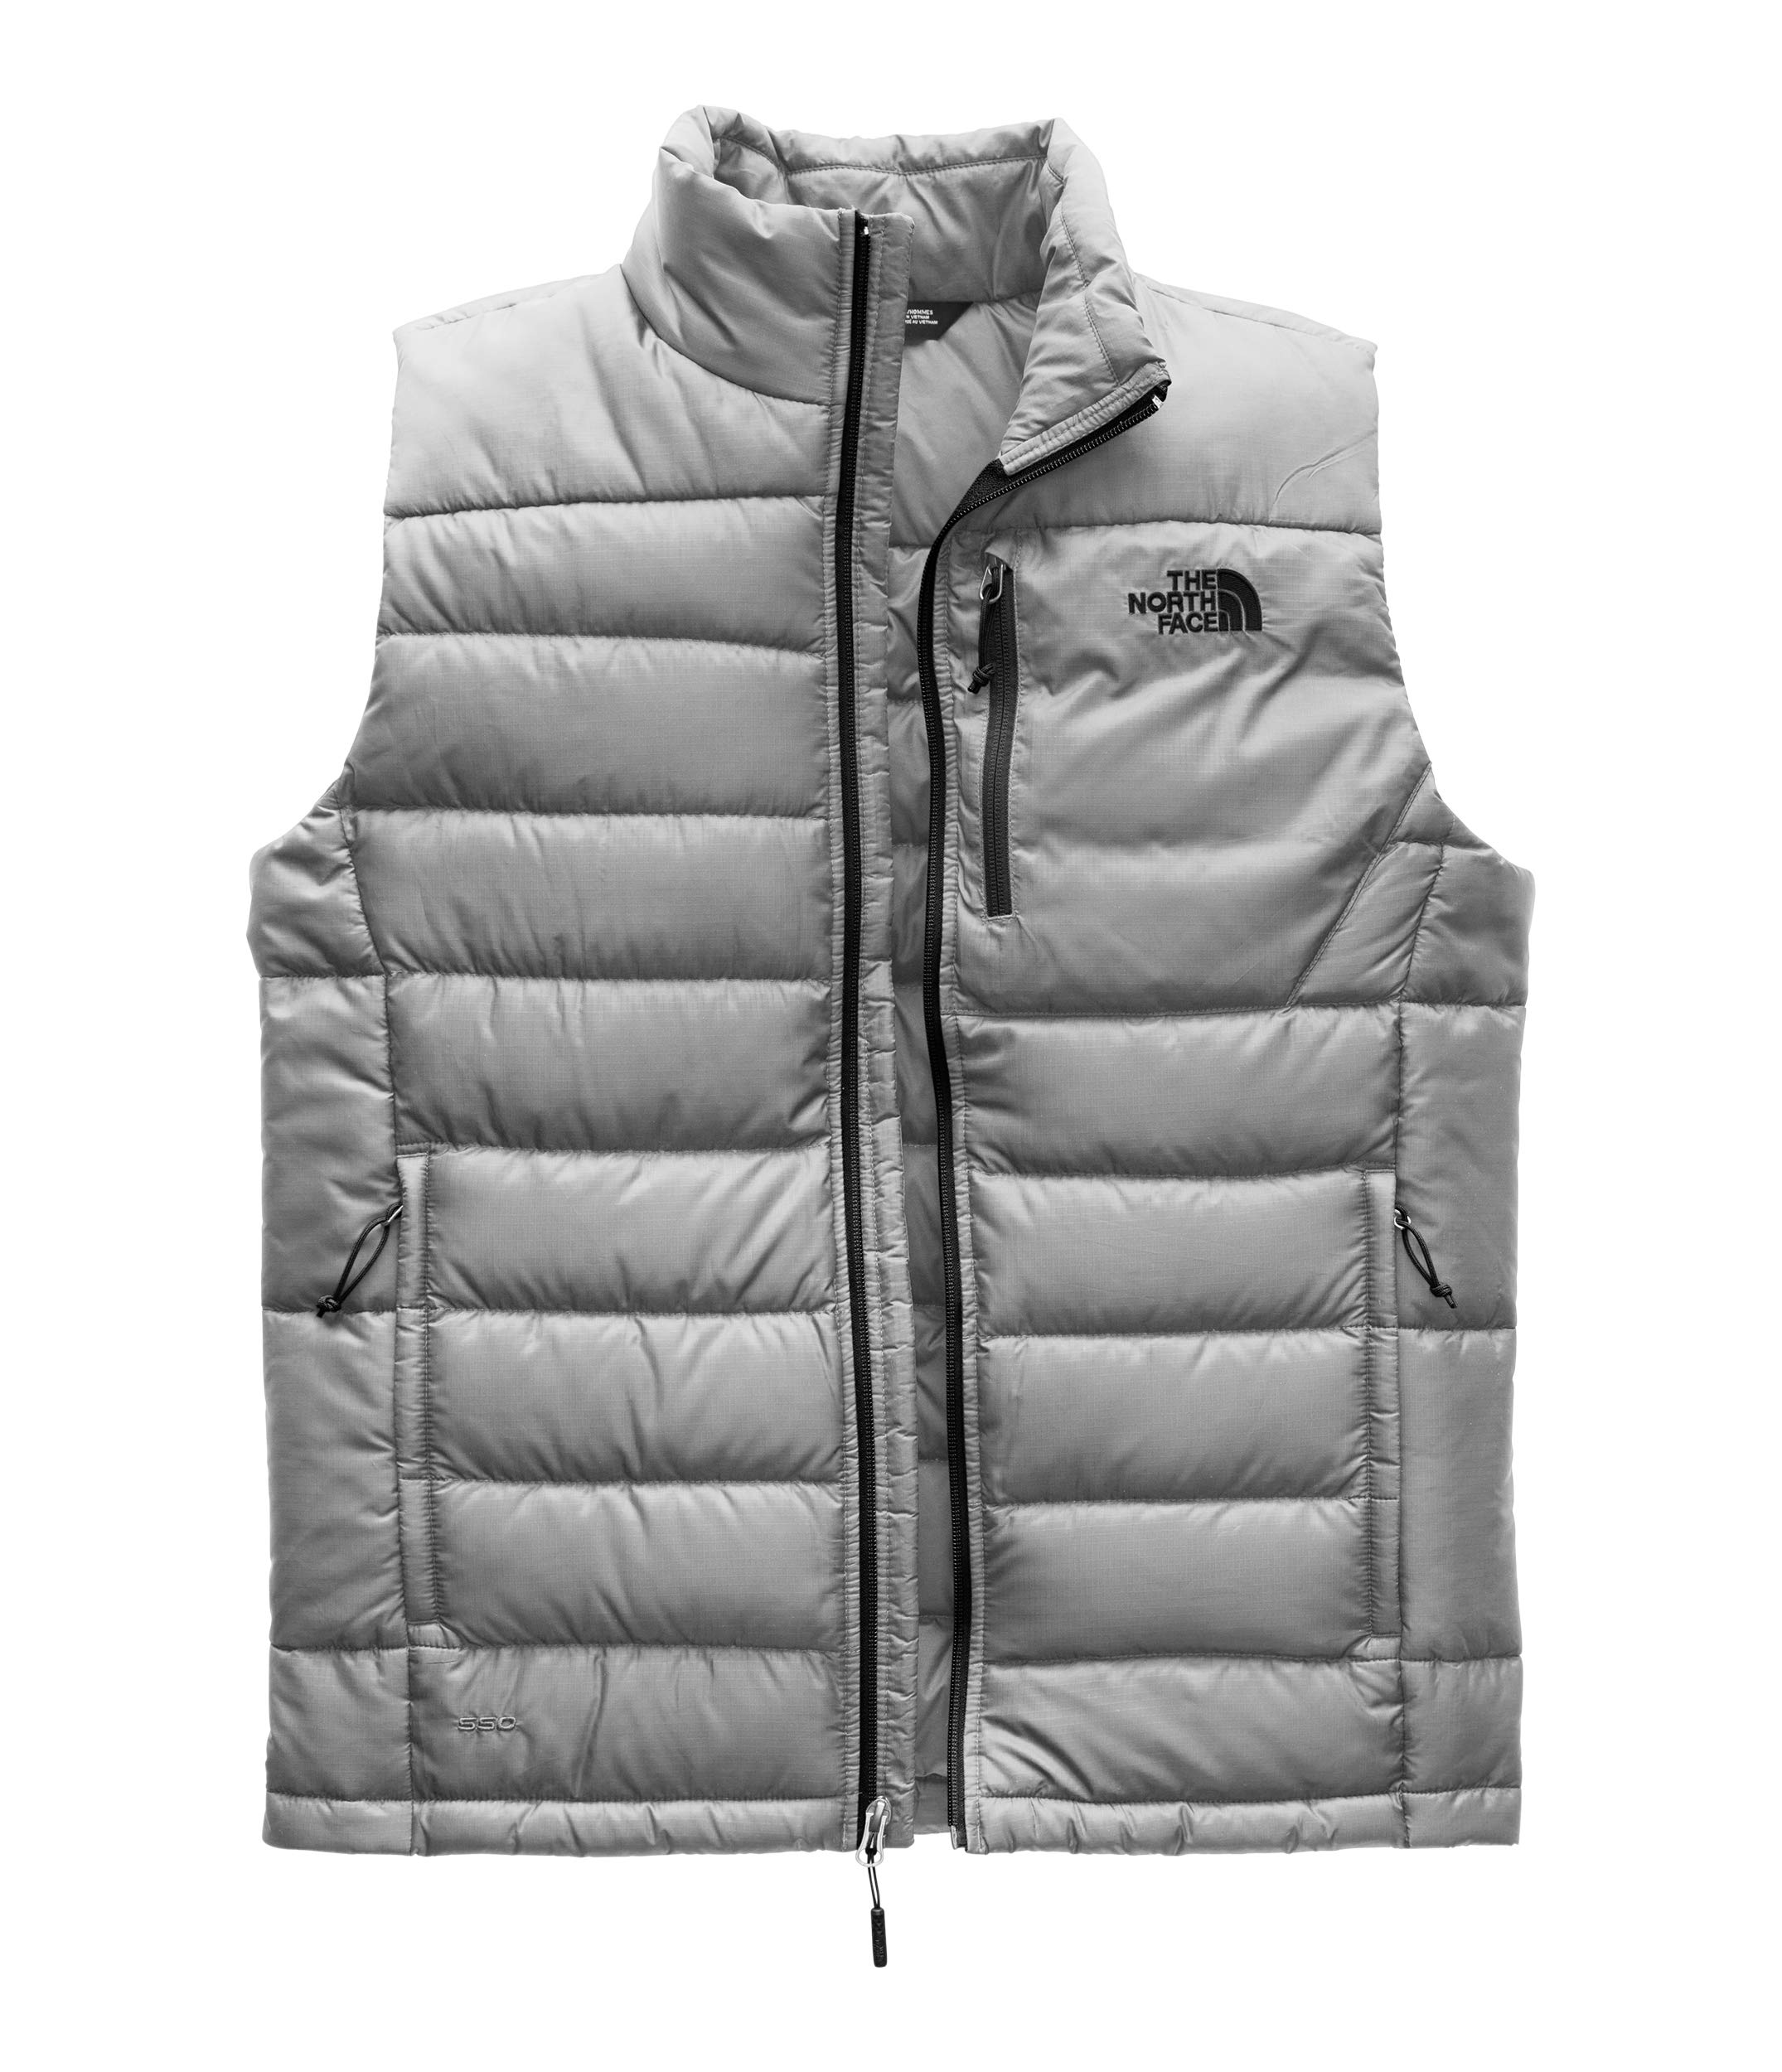 The North Face Men's Aconcagua Vest - Mid Grey - L by The North Face